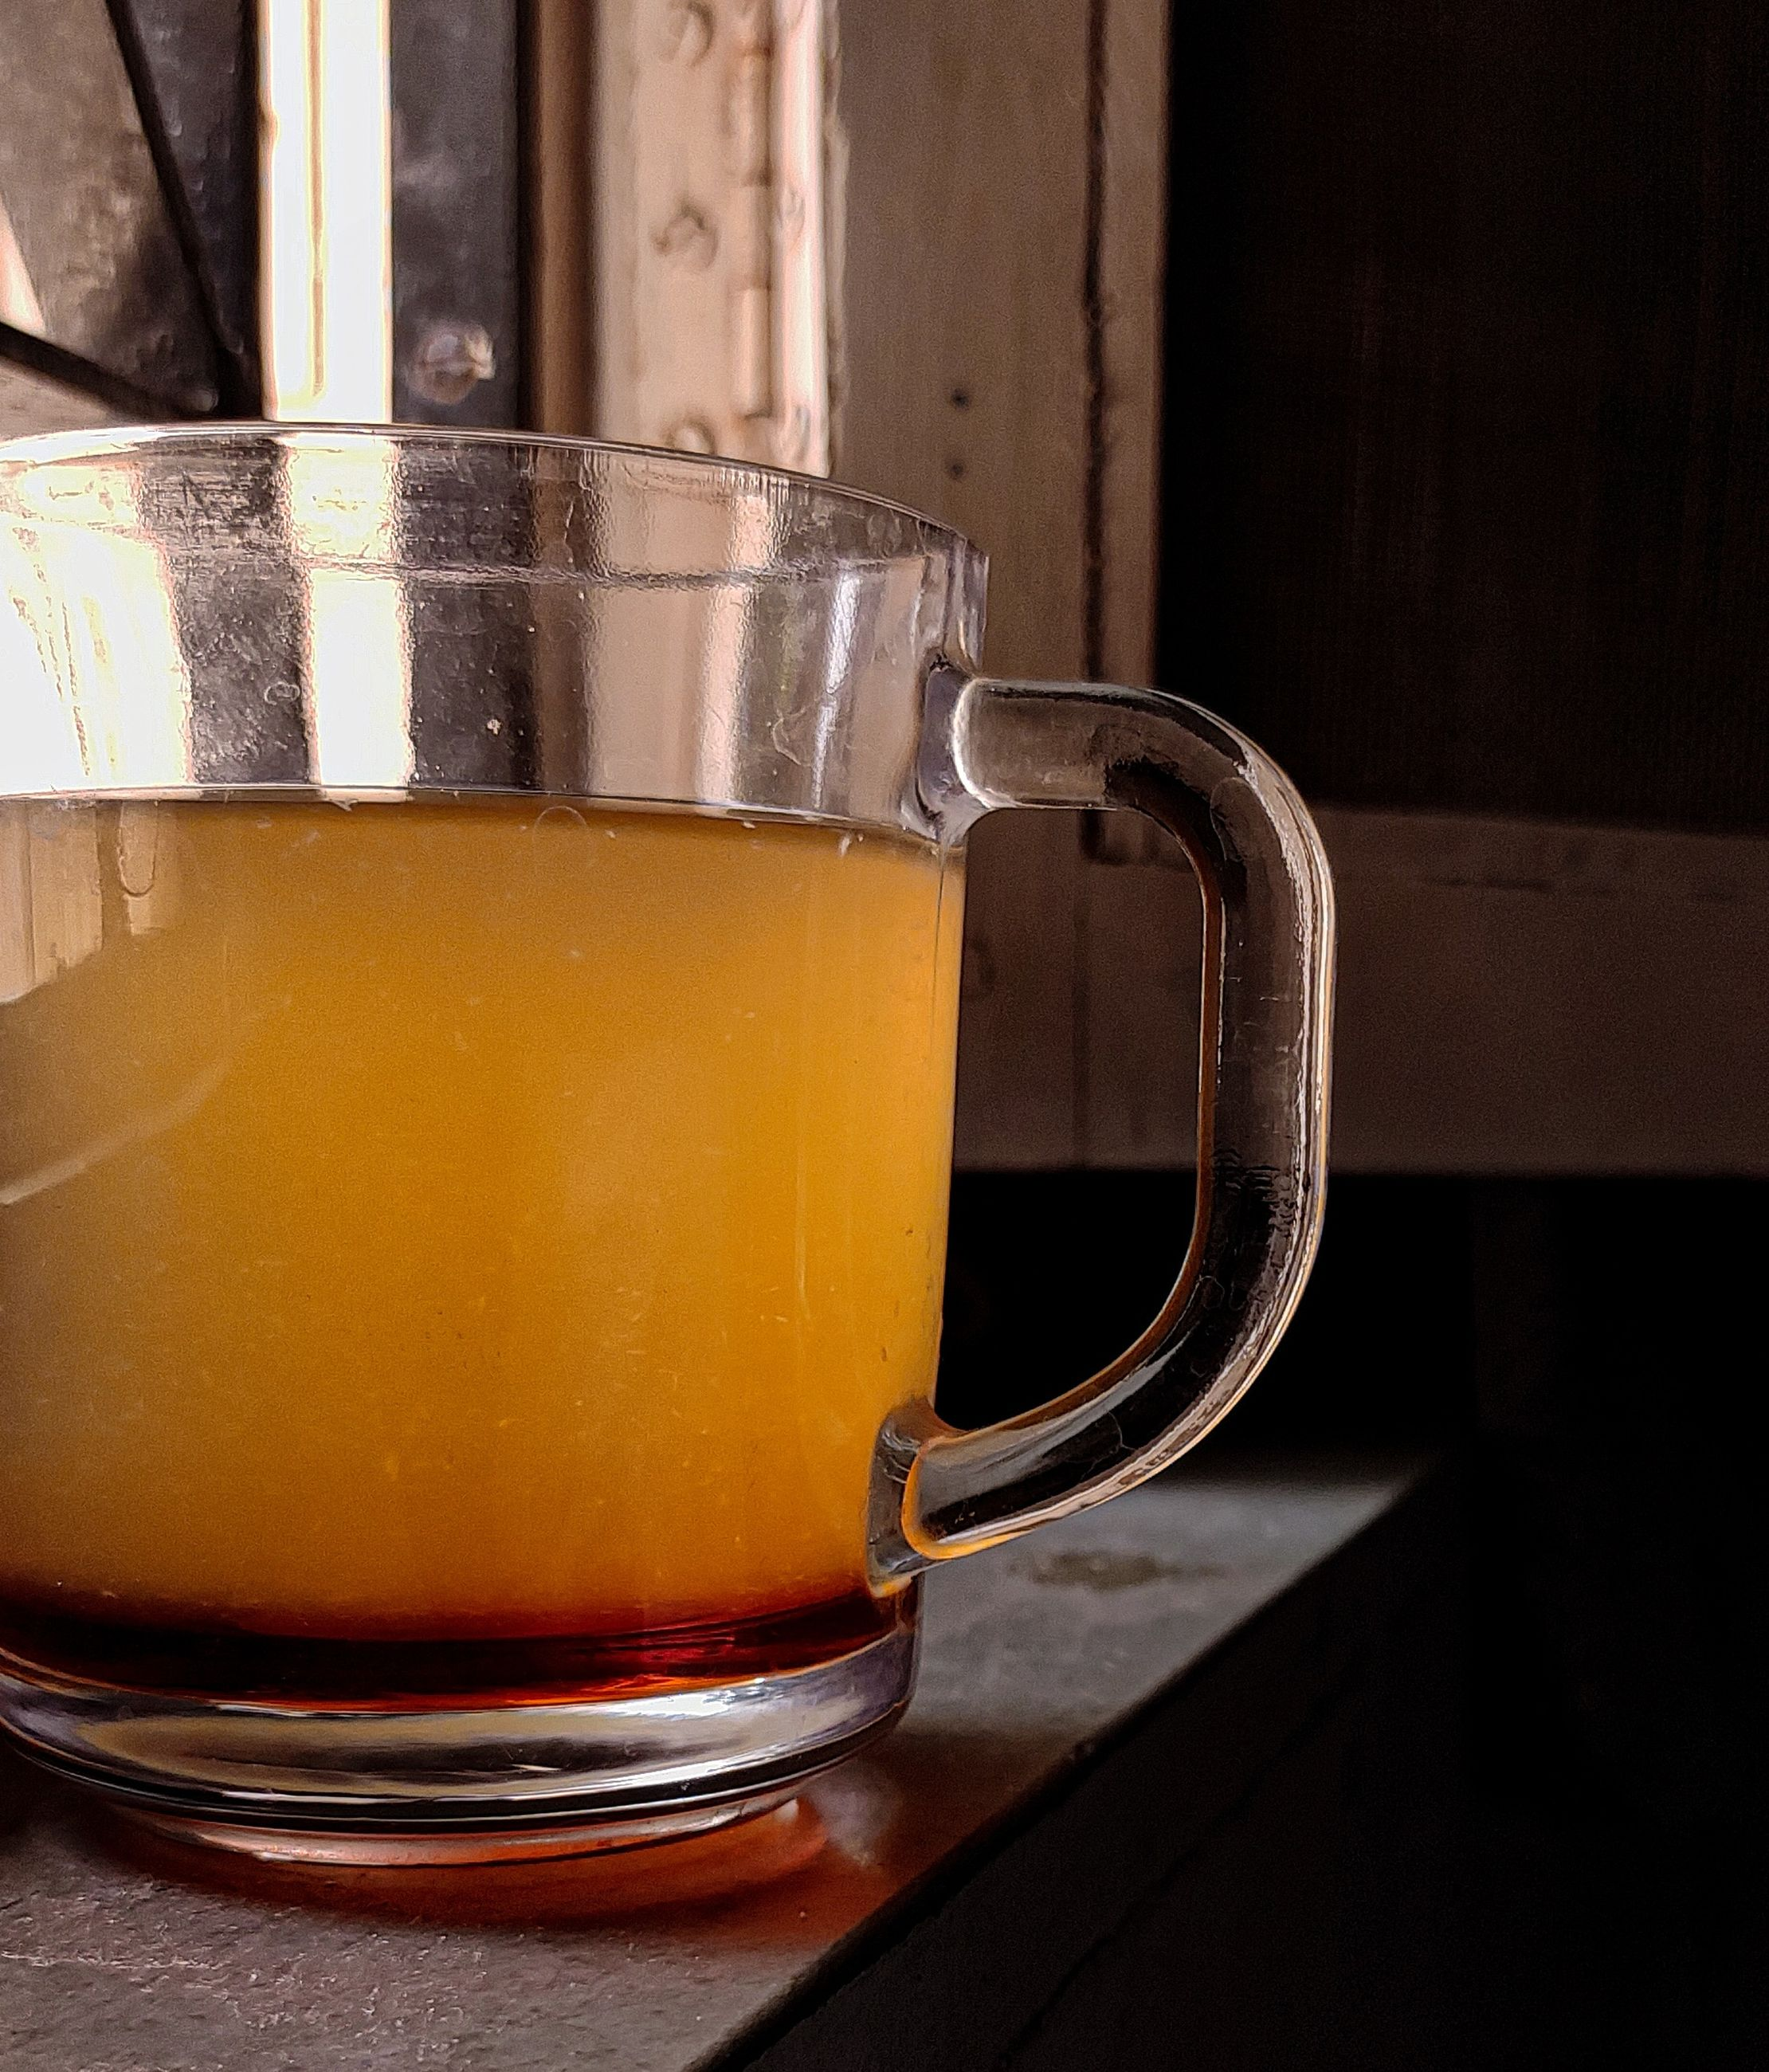 food and drink, drink, refreshment, household equipment, drinking glass, alcoholic beverage, glass, beer glass, indoors, beer, still life, table, cup, mug, close-up, no people, distilled beverage, freshness, frothy drink, tea, hot drink, food, alcohol, wood